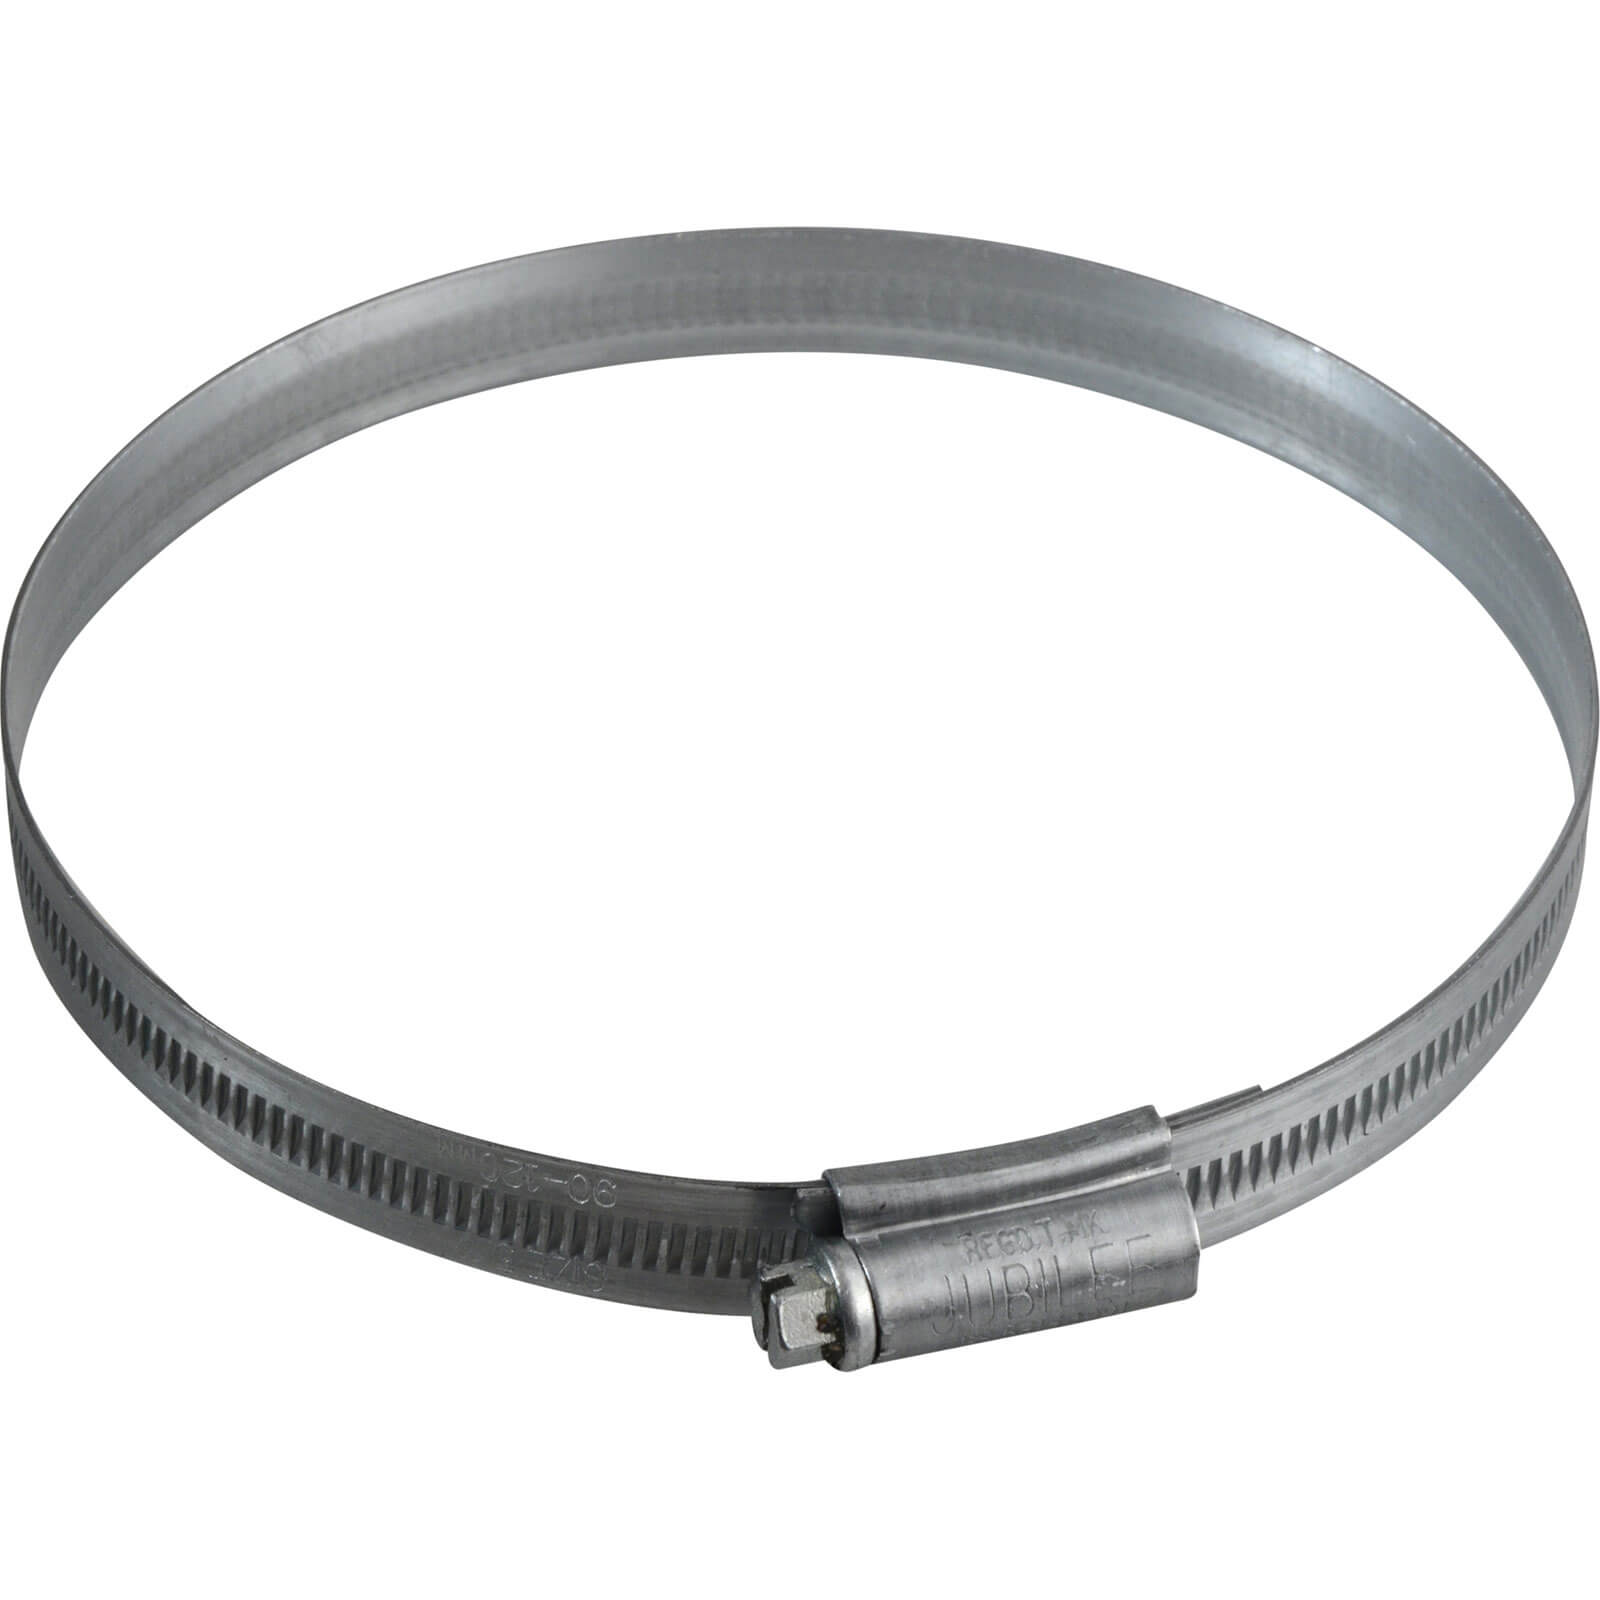 Image of Jubilee Zinc Plated Hose Clip 90mm - 120mm Pack of 1